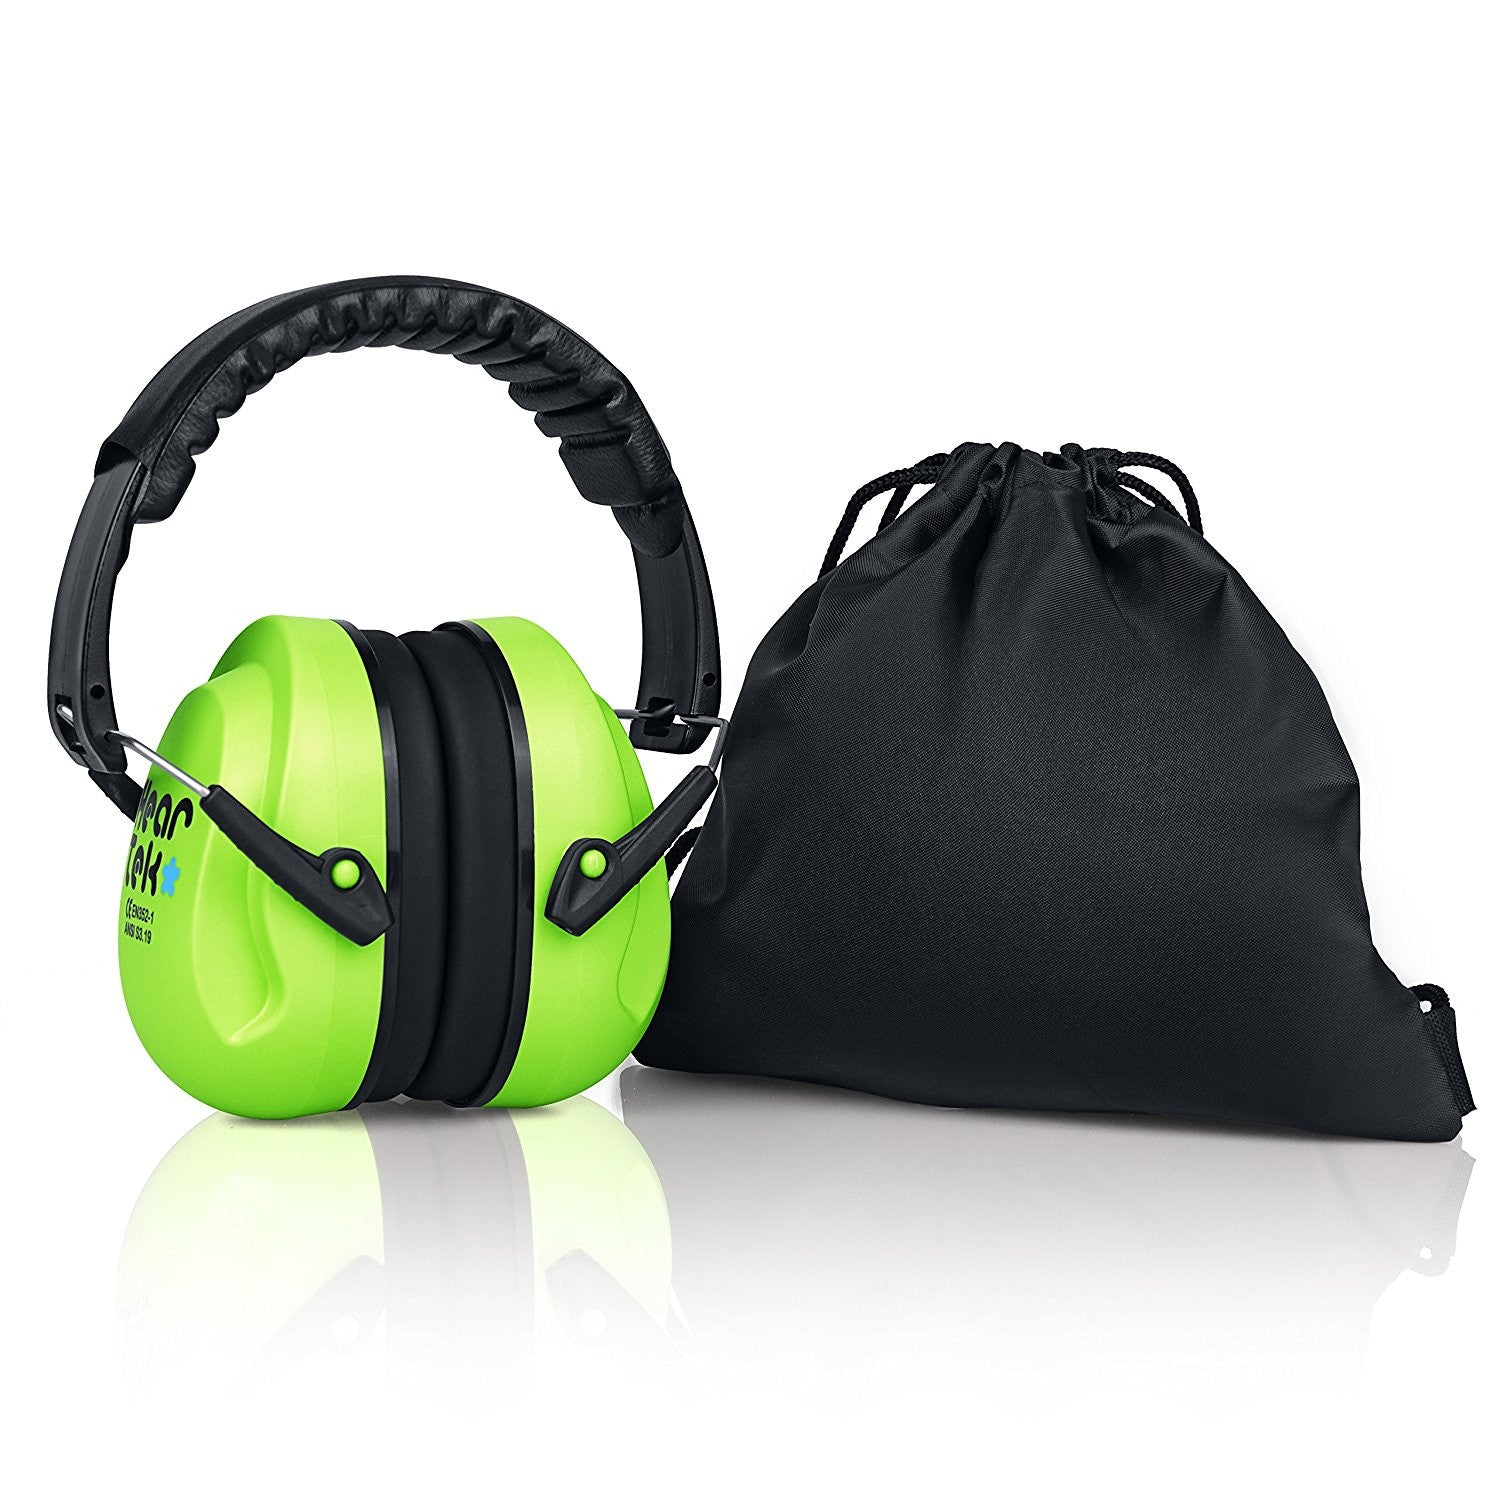 Green Sammy Earmuffs Hearing Protection with Travel Bag